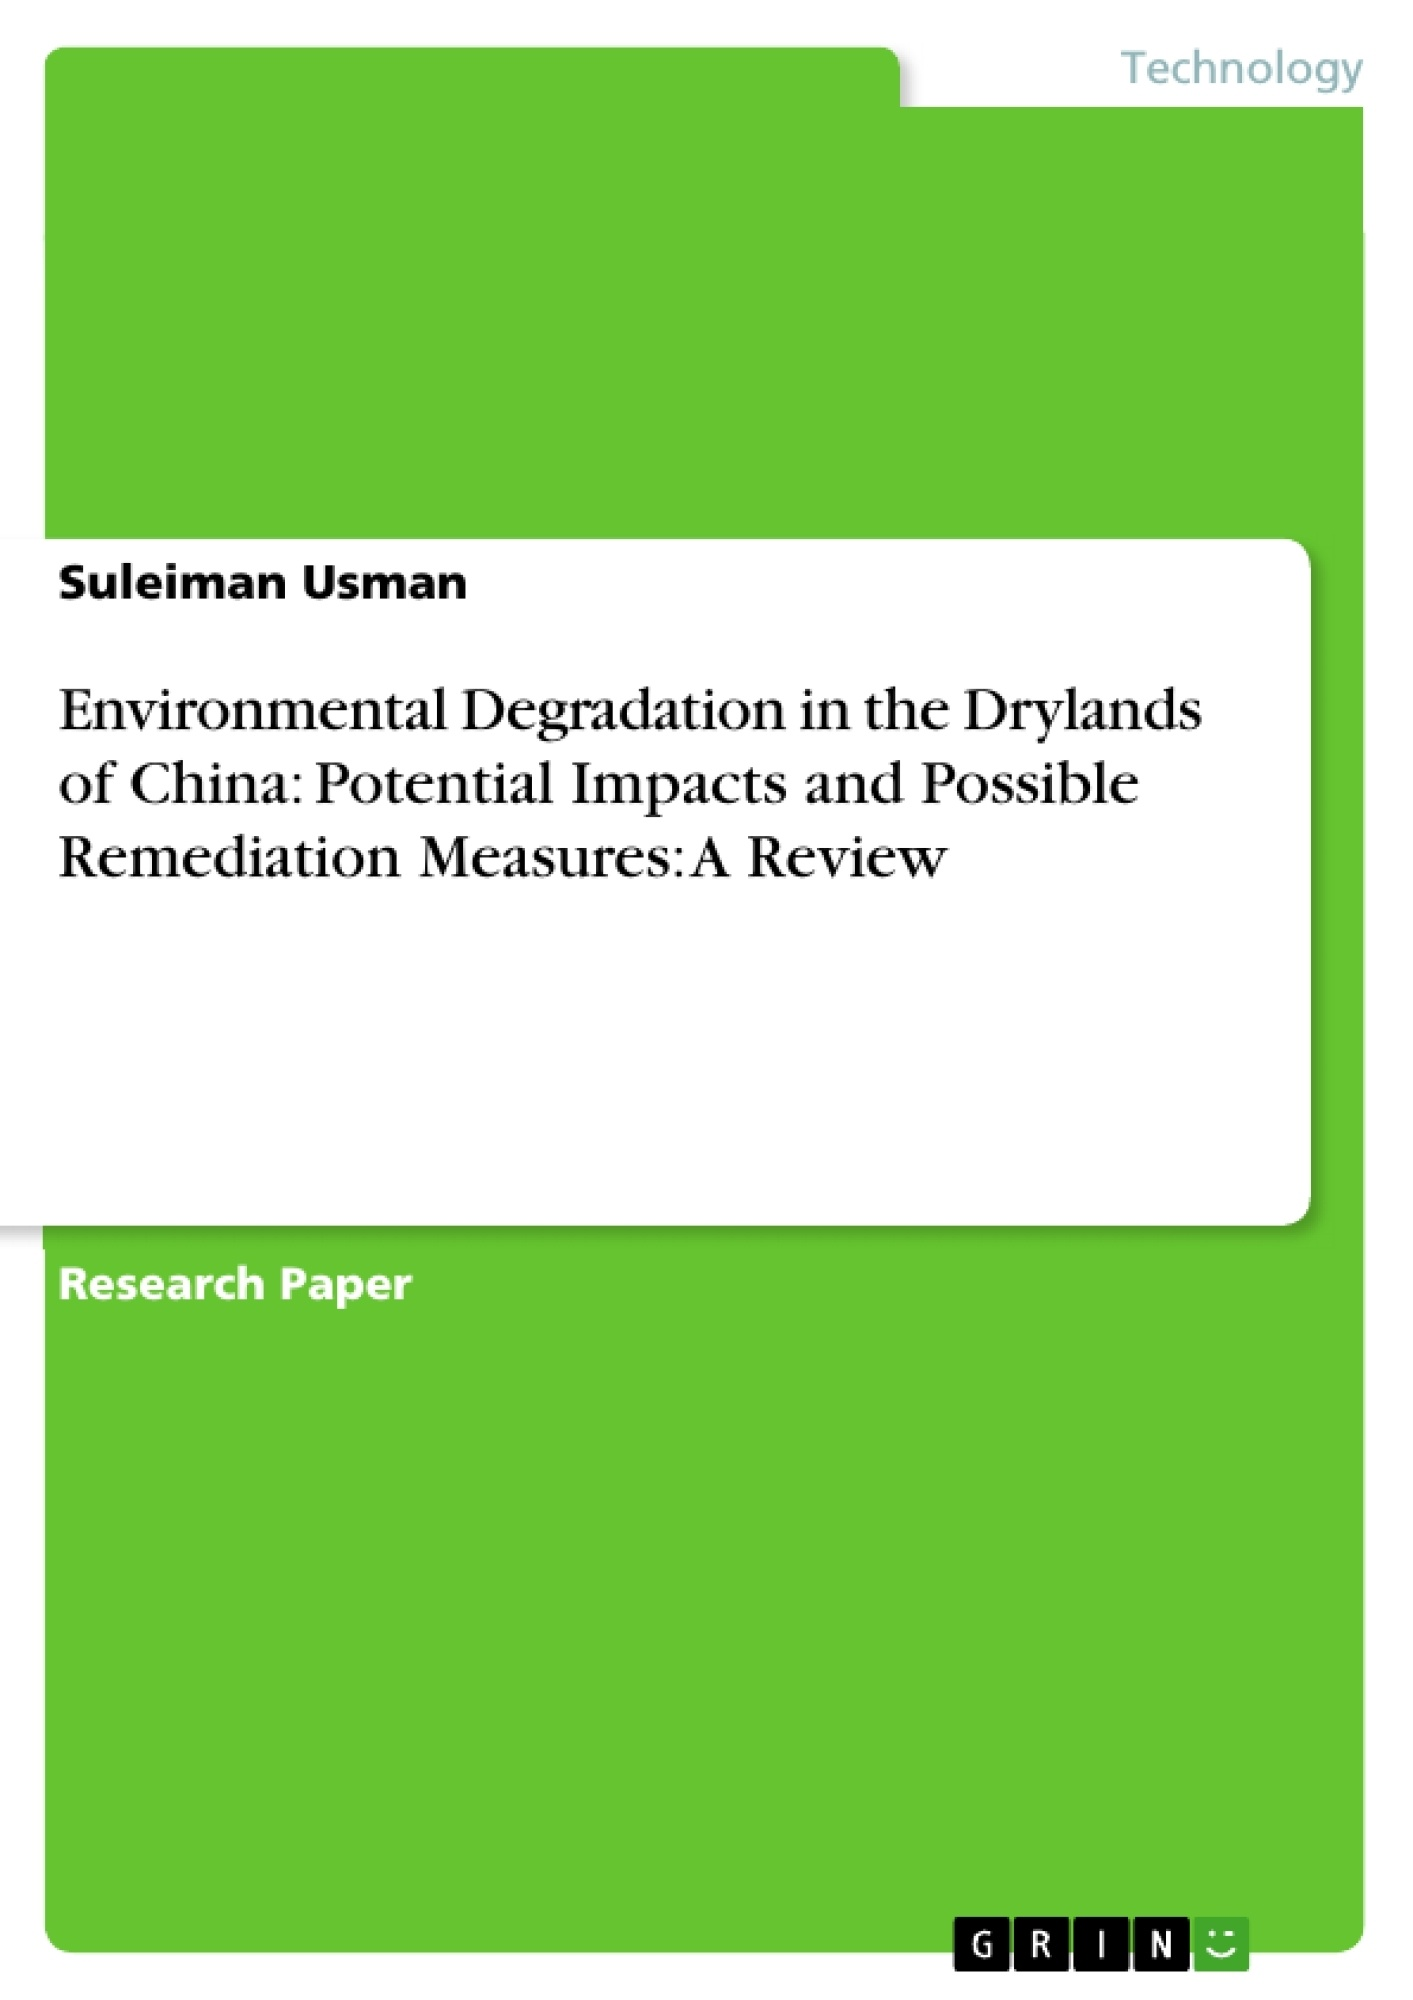 Title: Environmental Degradation in the Drylands of China: Potential Impacts and Possible Remediation Measures: A Review